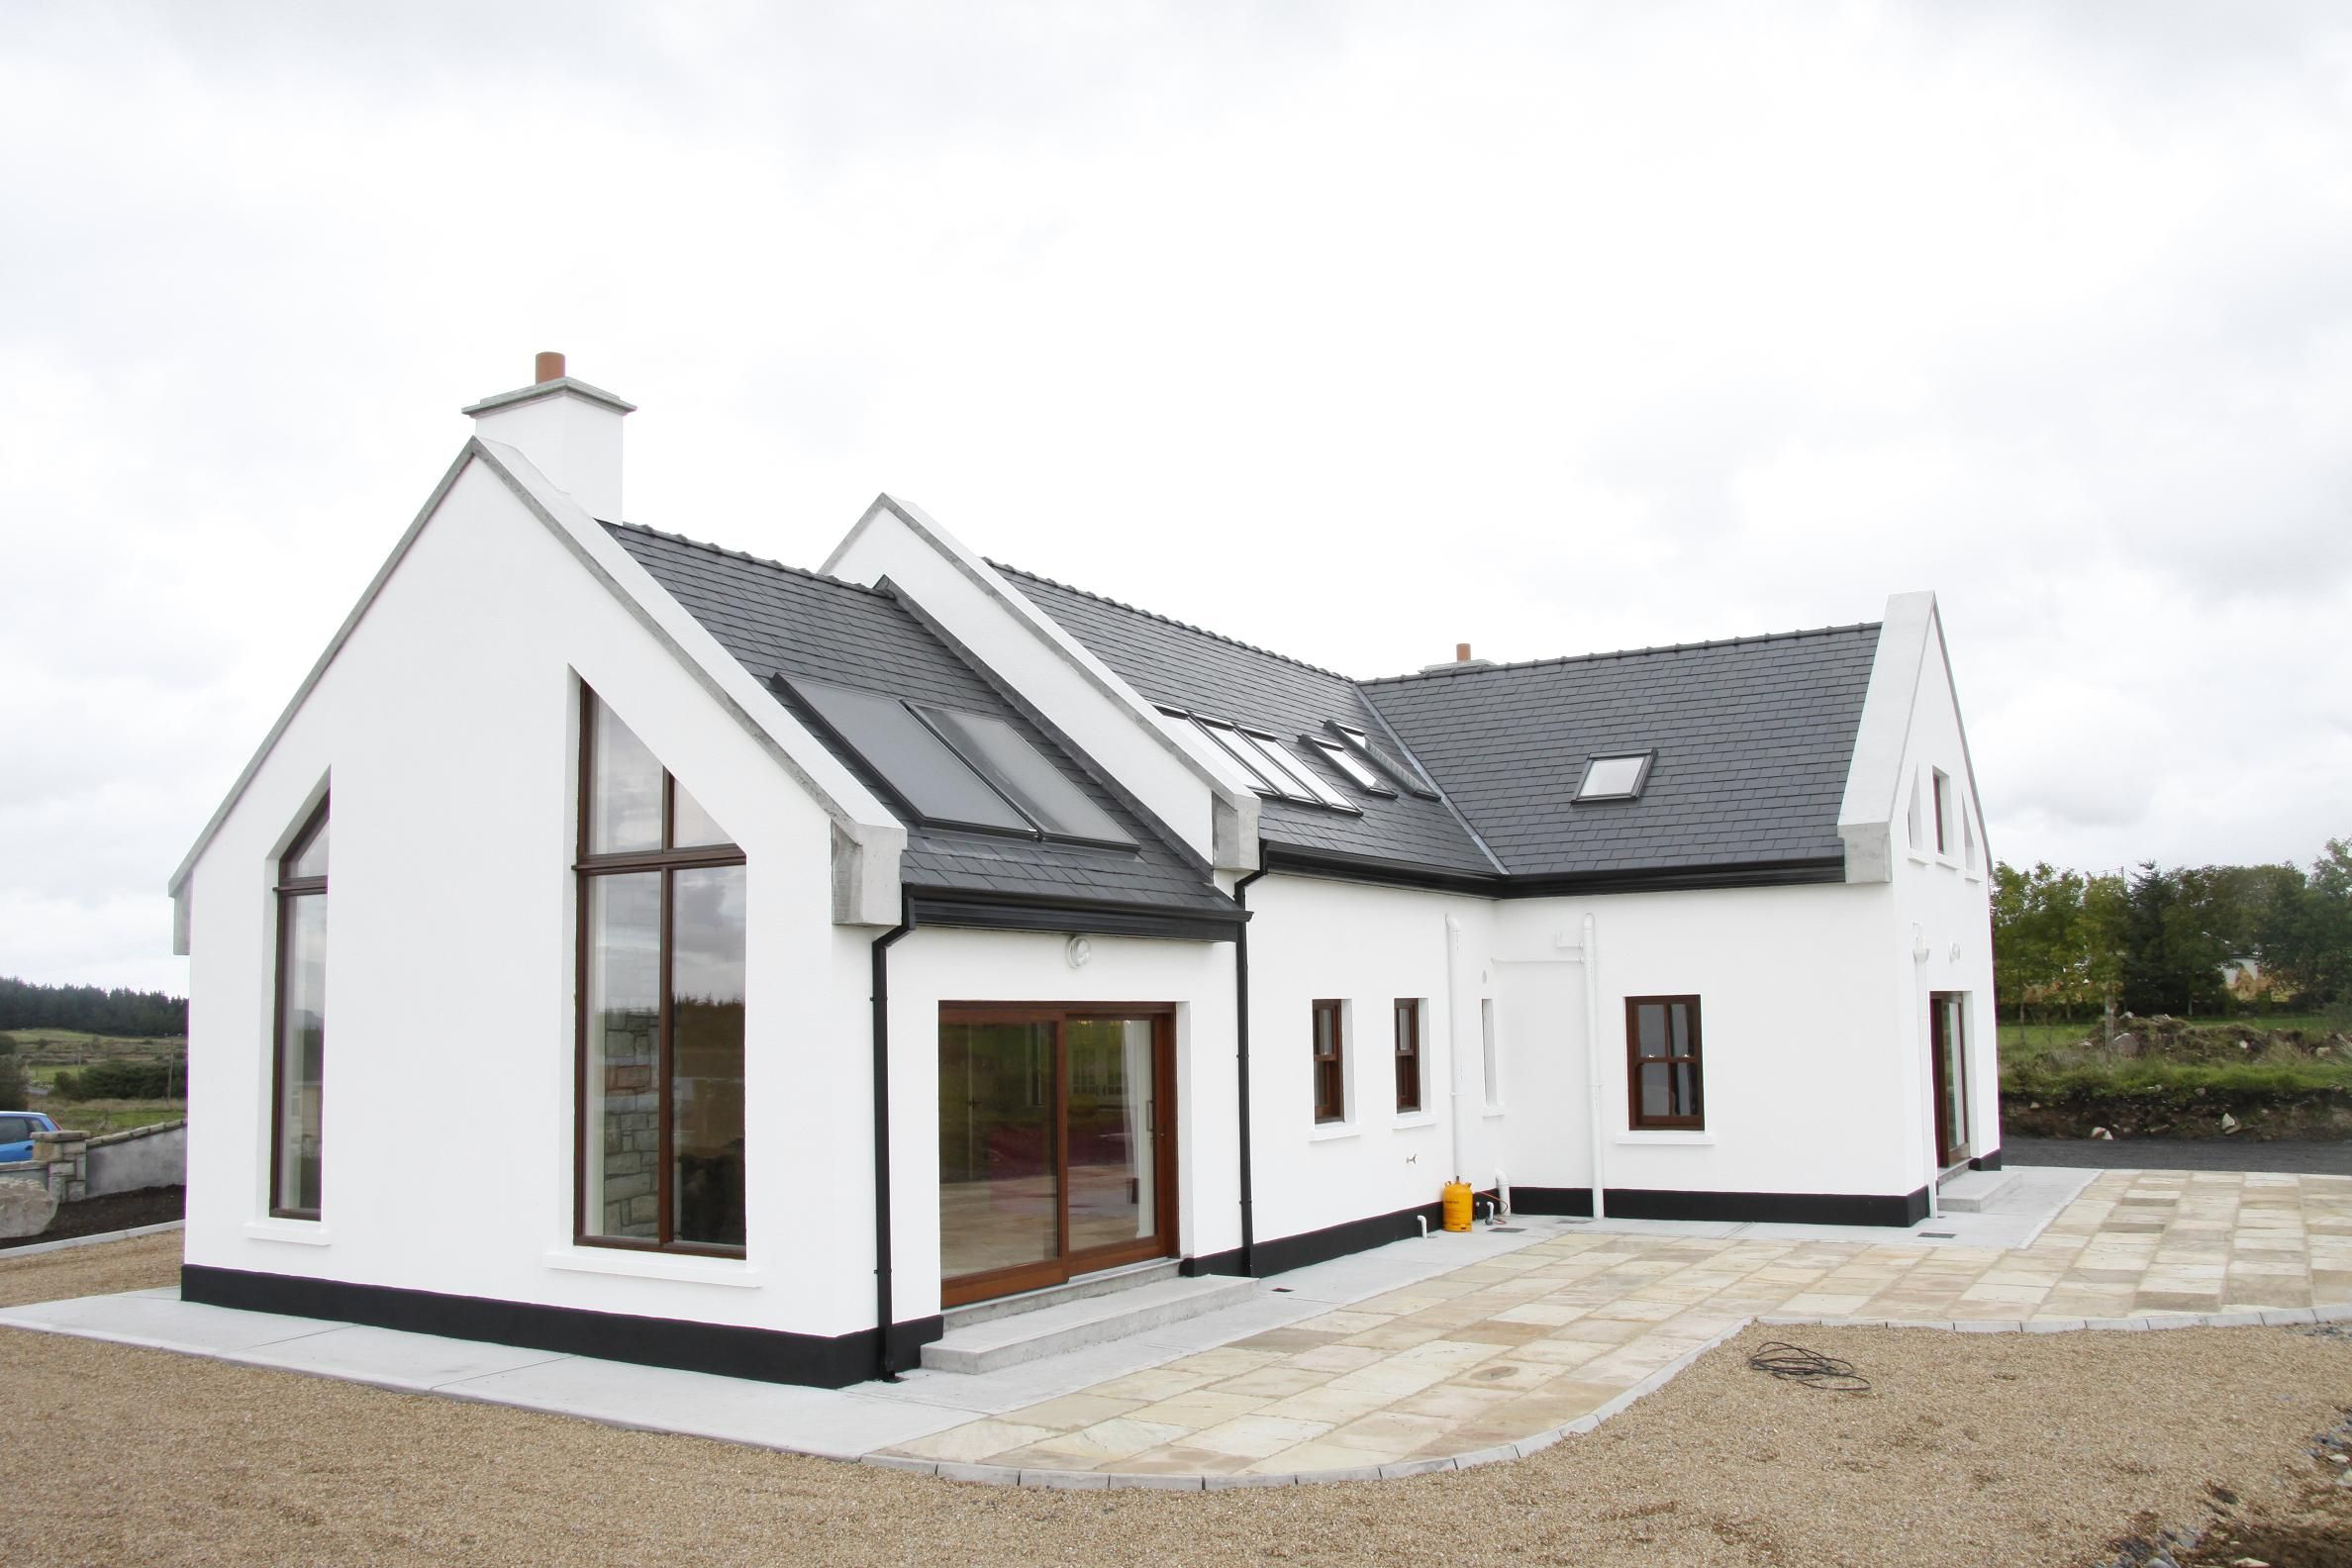 Exterior bungalow house ireland google search house for Modern cottage house plans